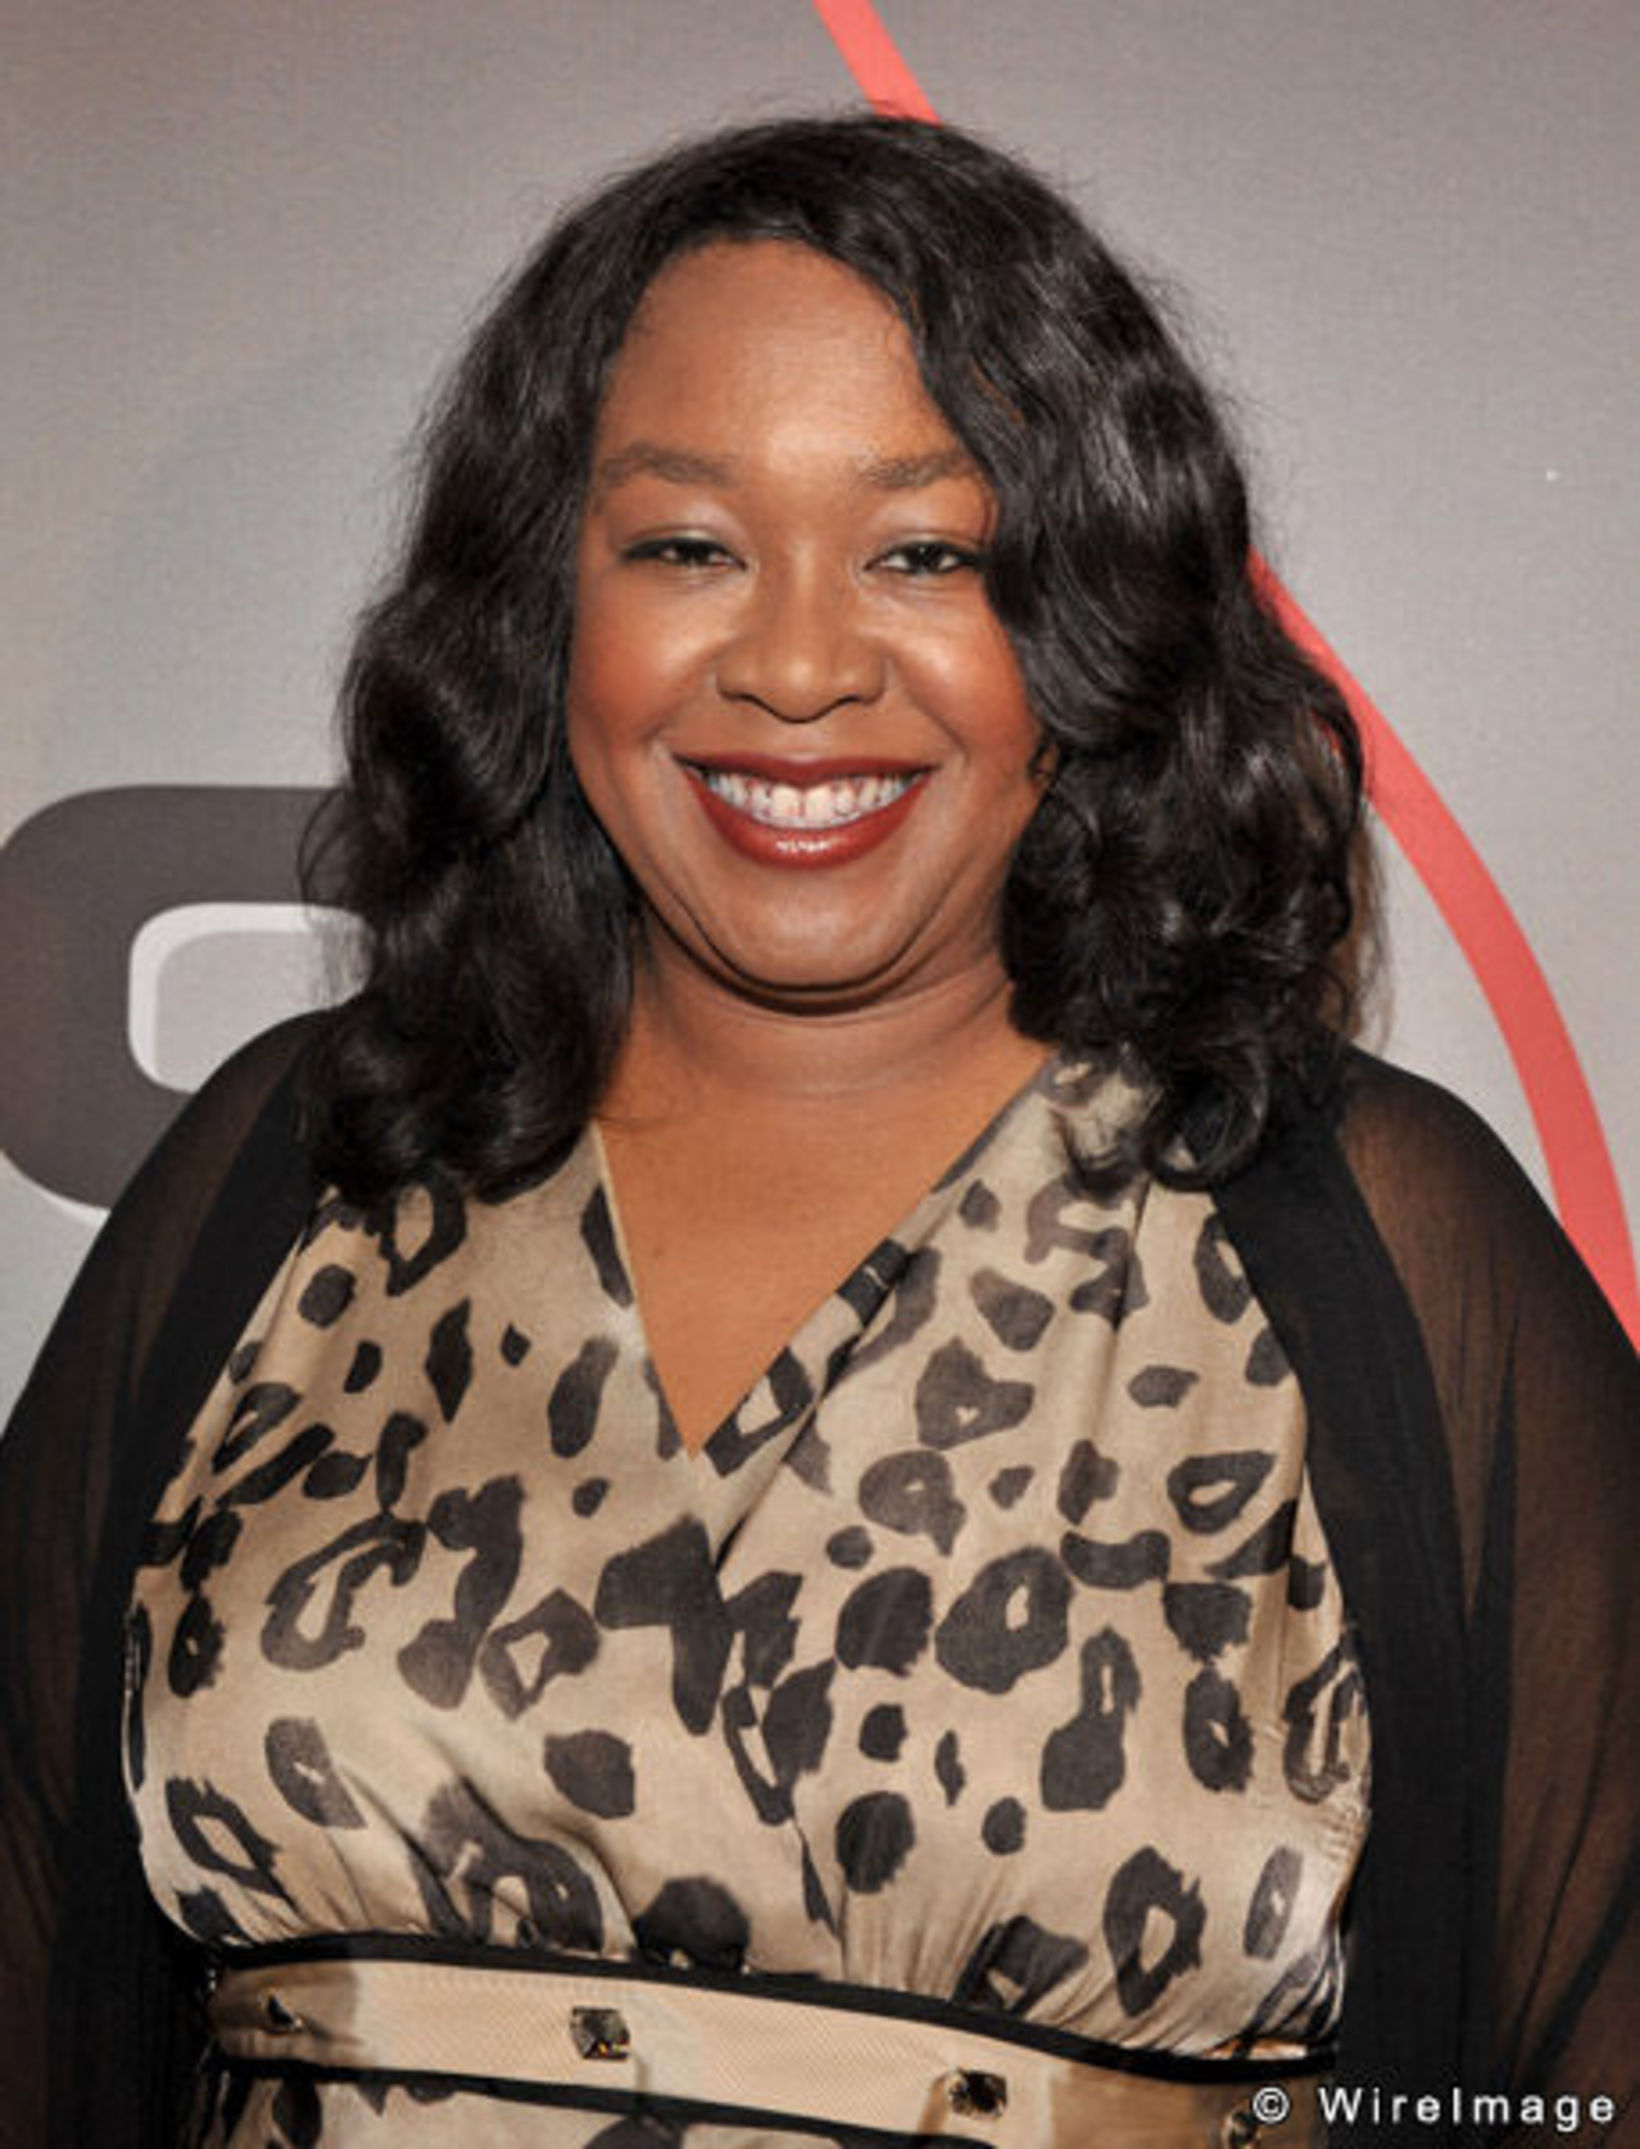 abc greenlights pilot episode for 4th shonda rhimes series gilded lilly drama set in 1895. Black Bedroom Furniture Sets. Home Design Ideas